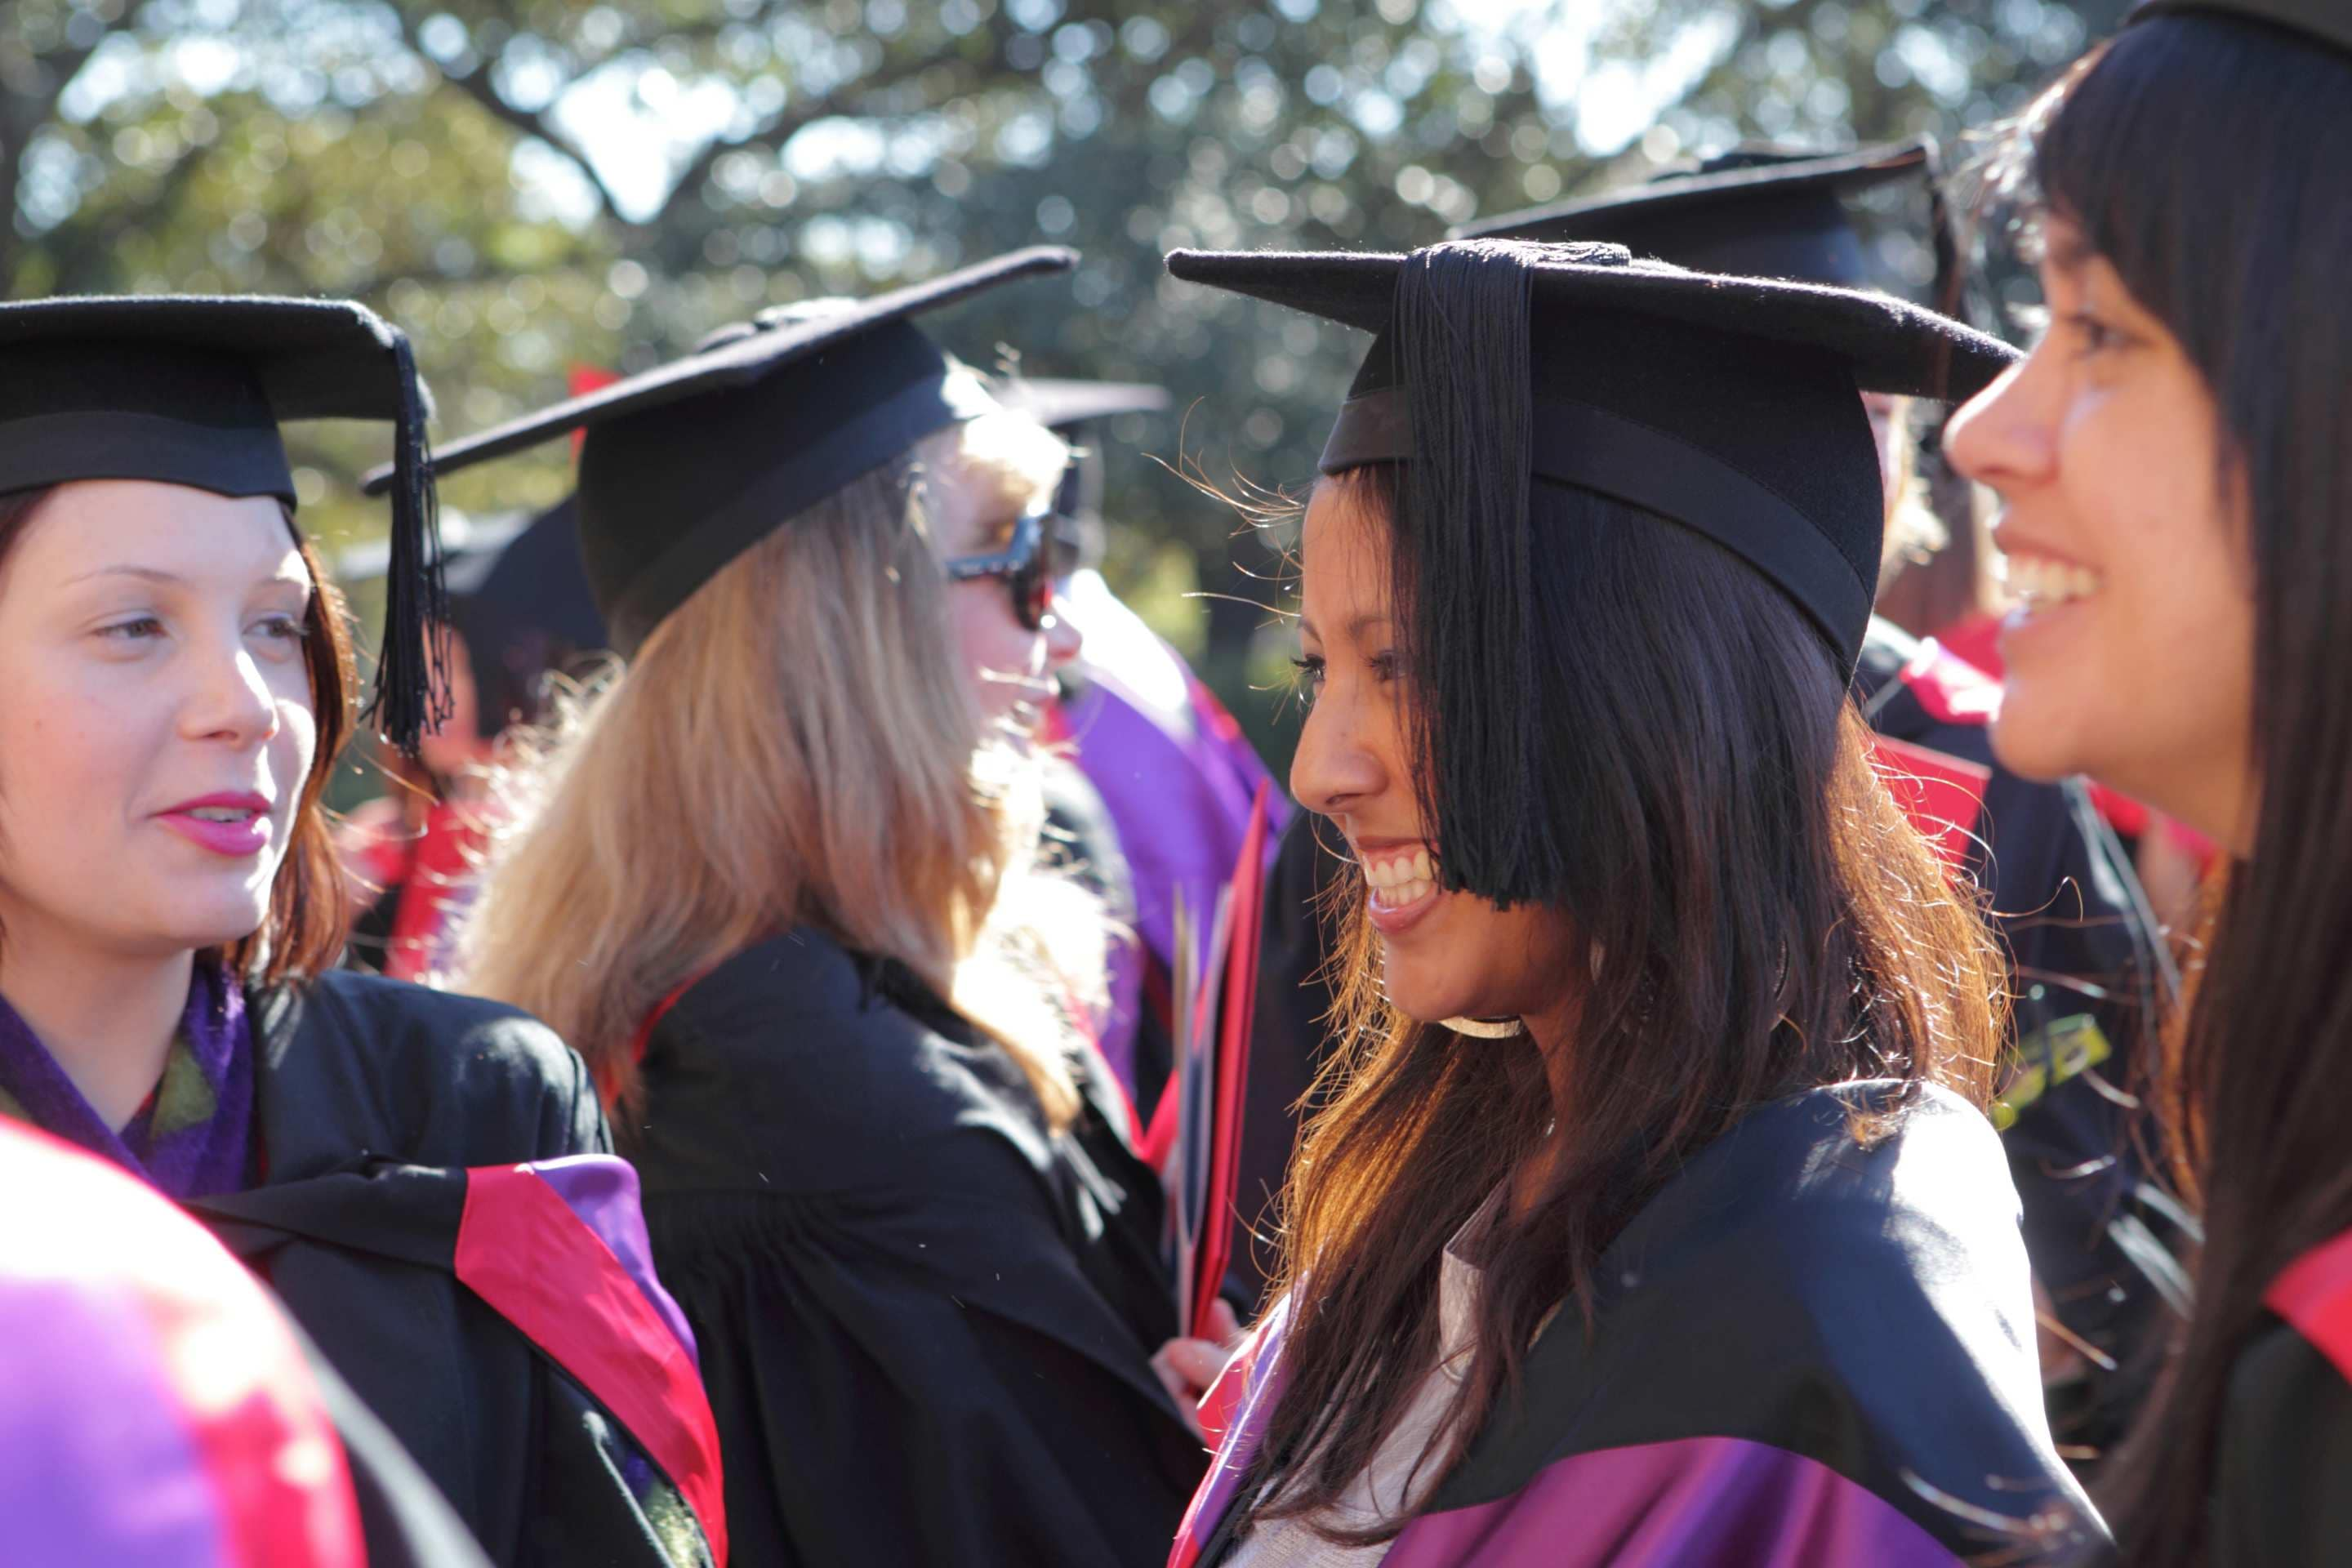 Become a graduation expert in 4 easy steps - The University of Sydney